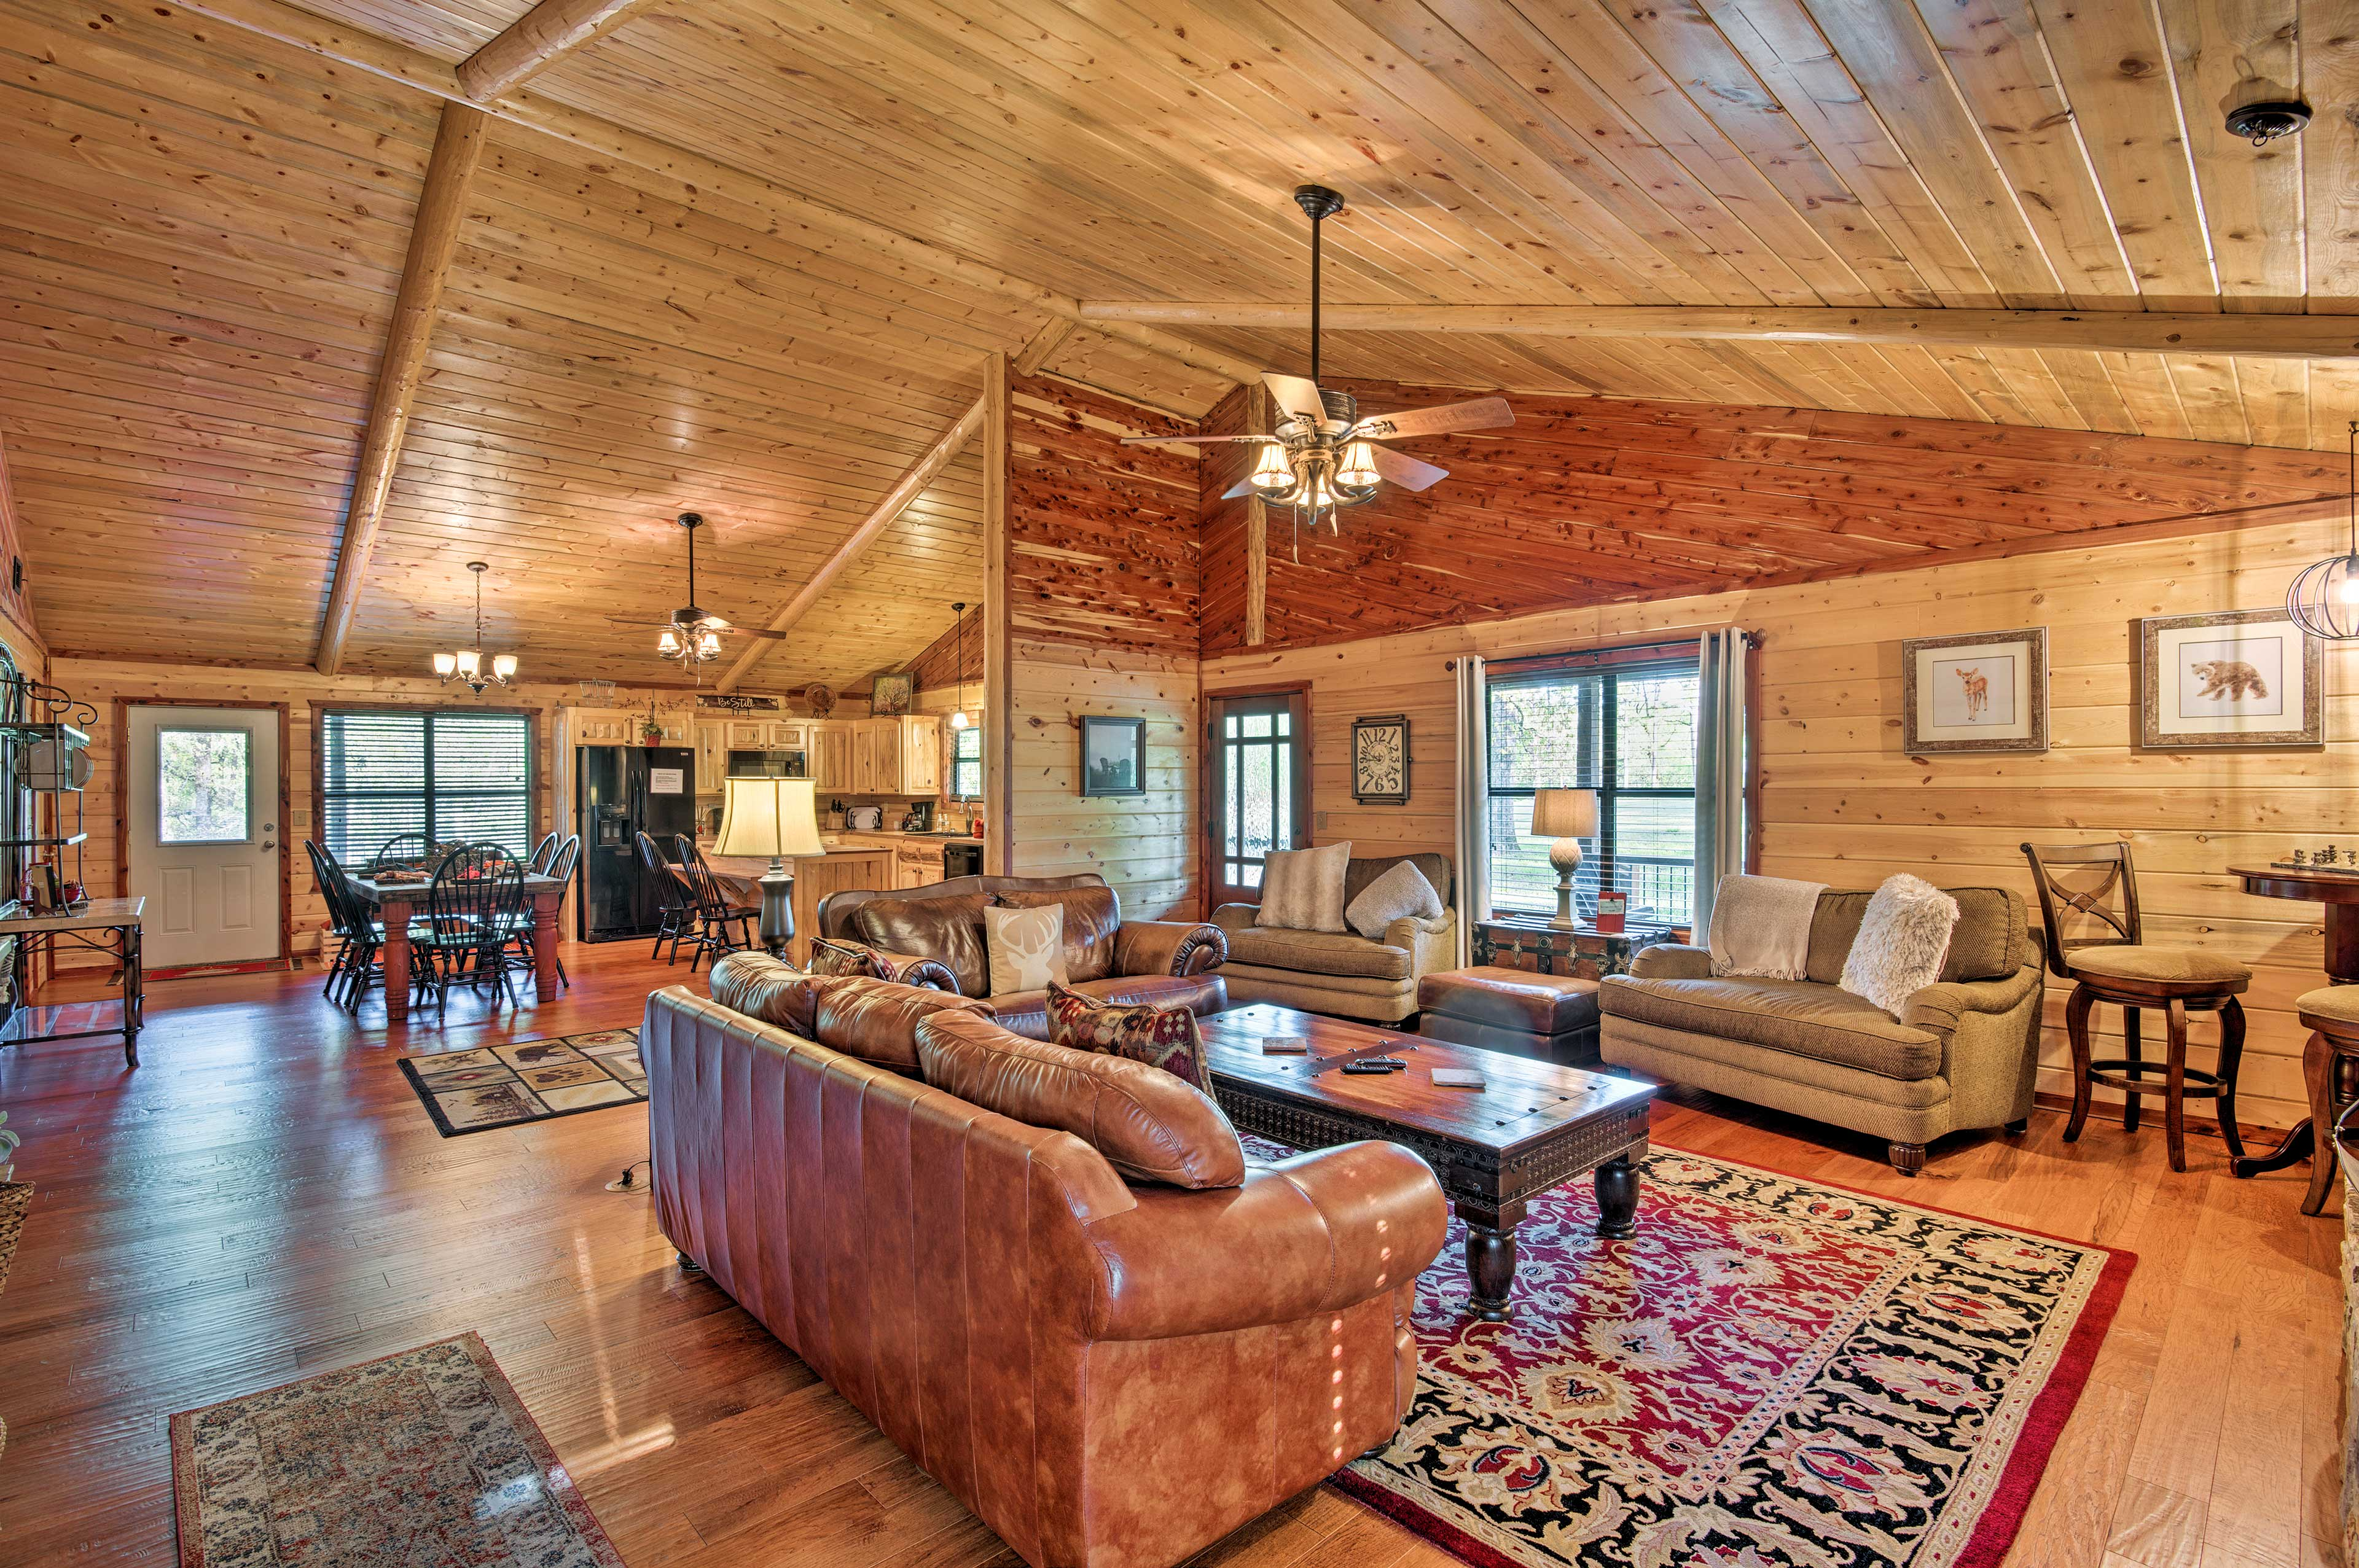 Cuddle up on the leather sofas in front of the fireplace & flat-screen TV.